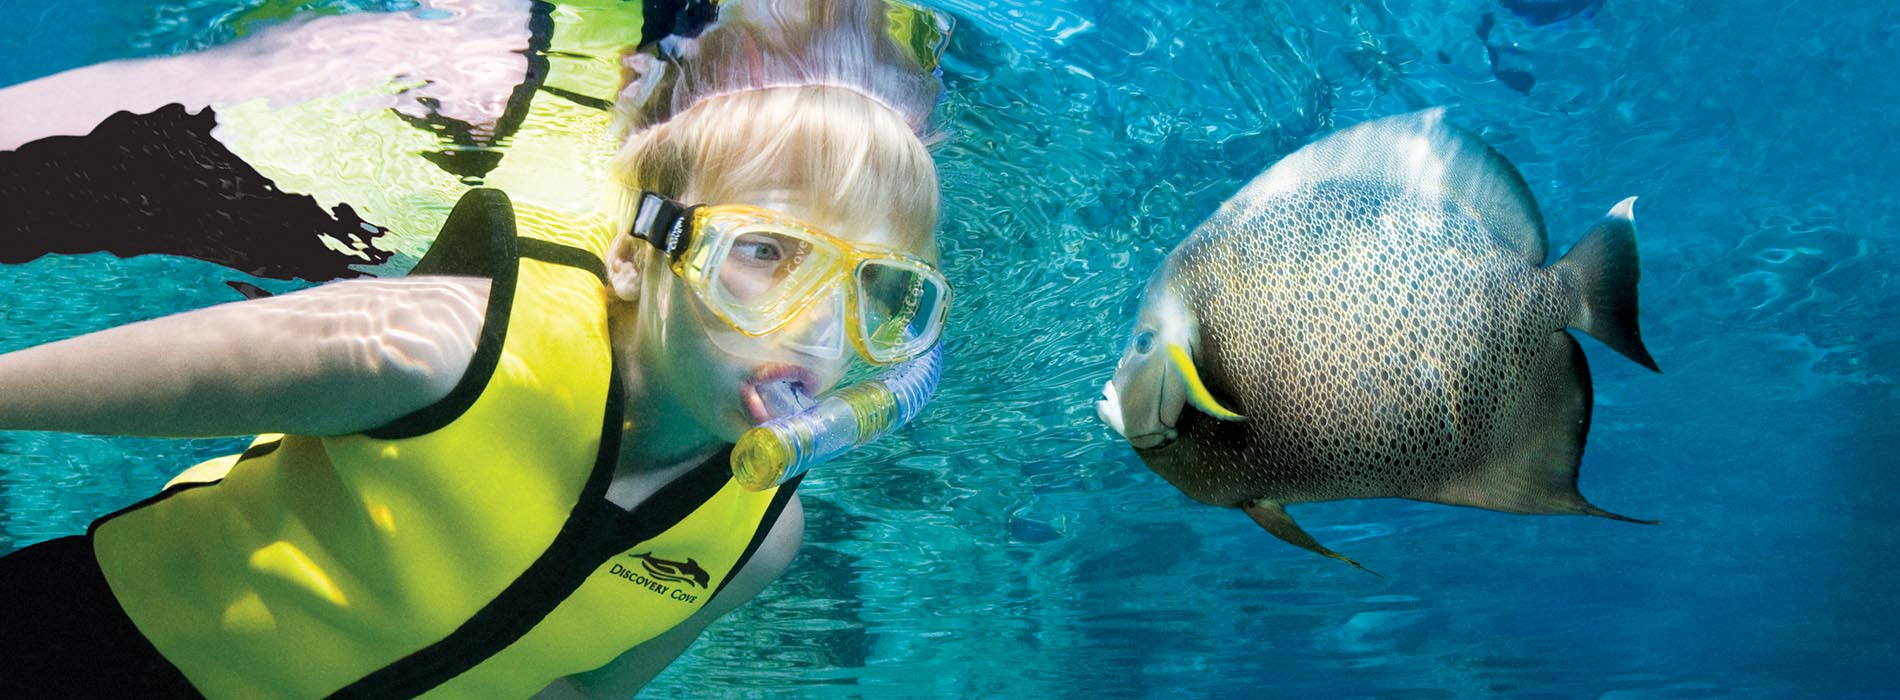 Boy snorkels with fish